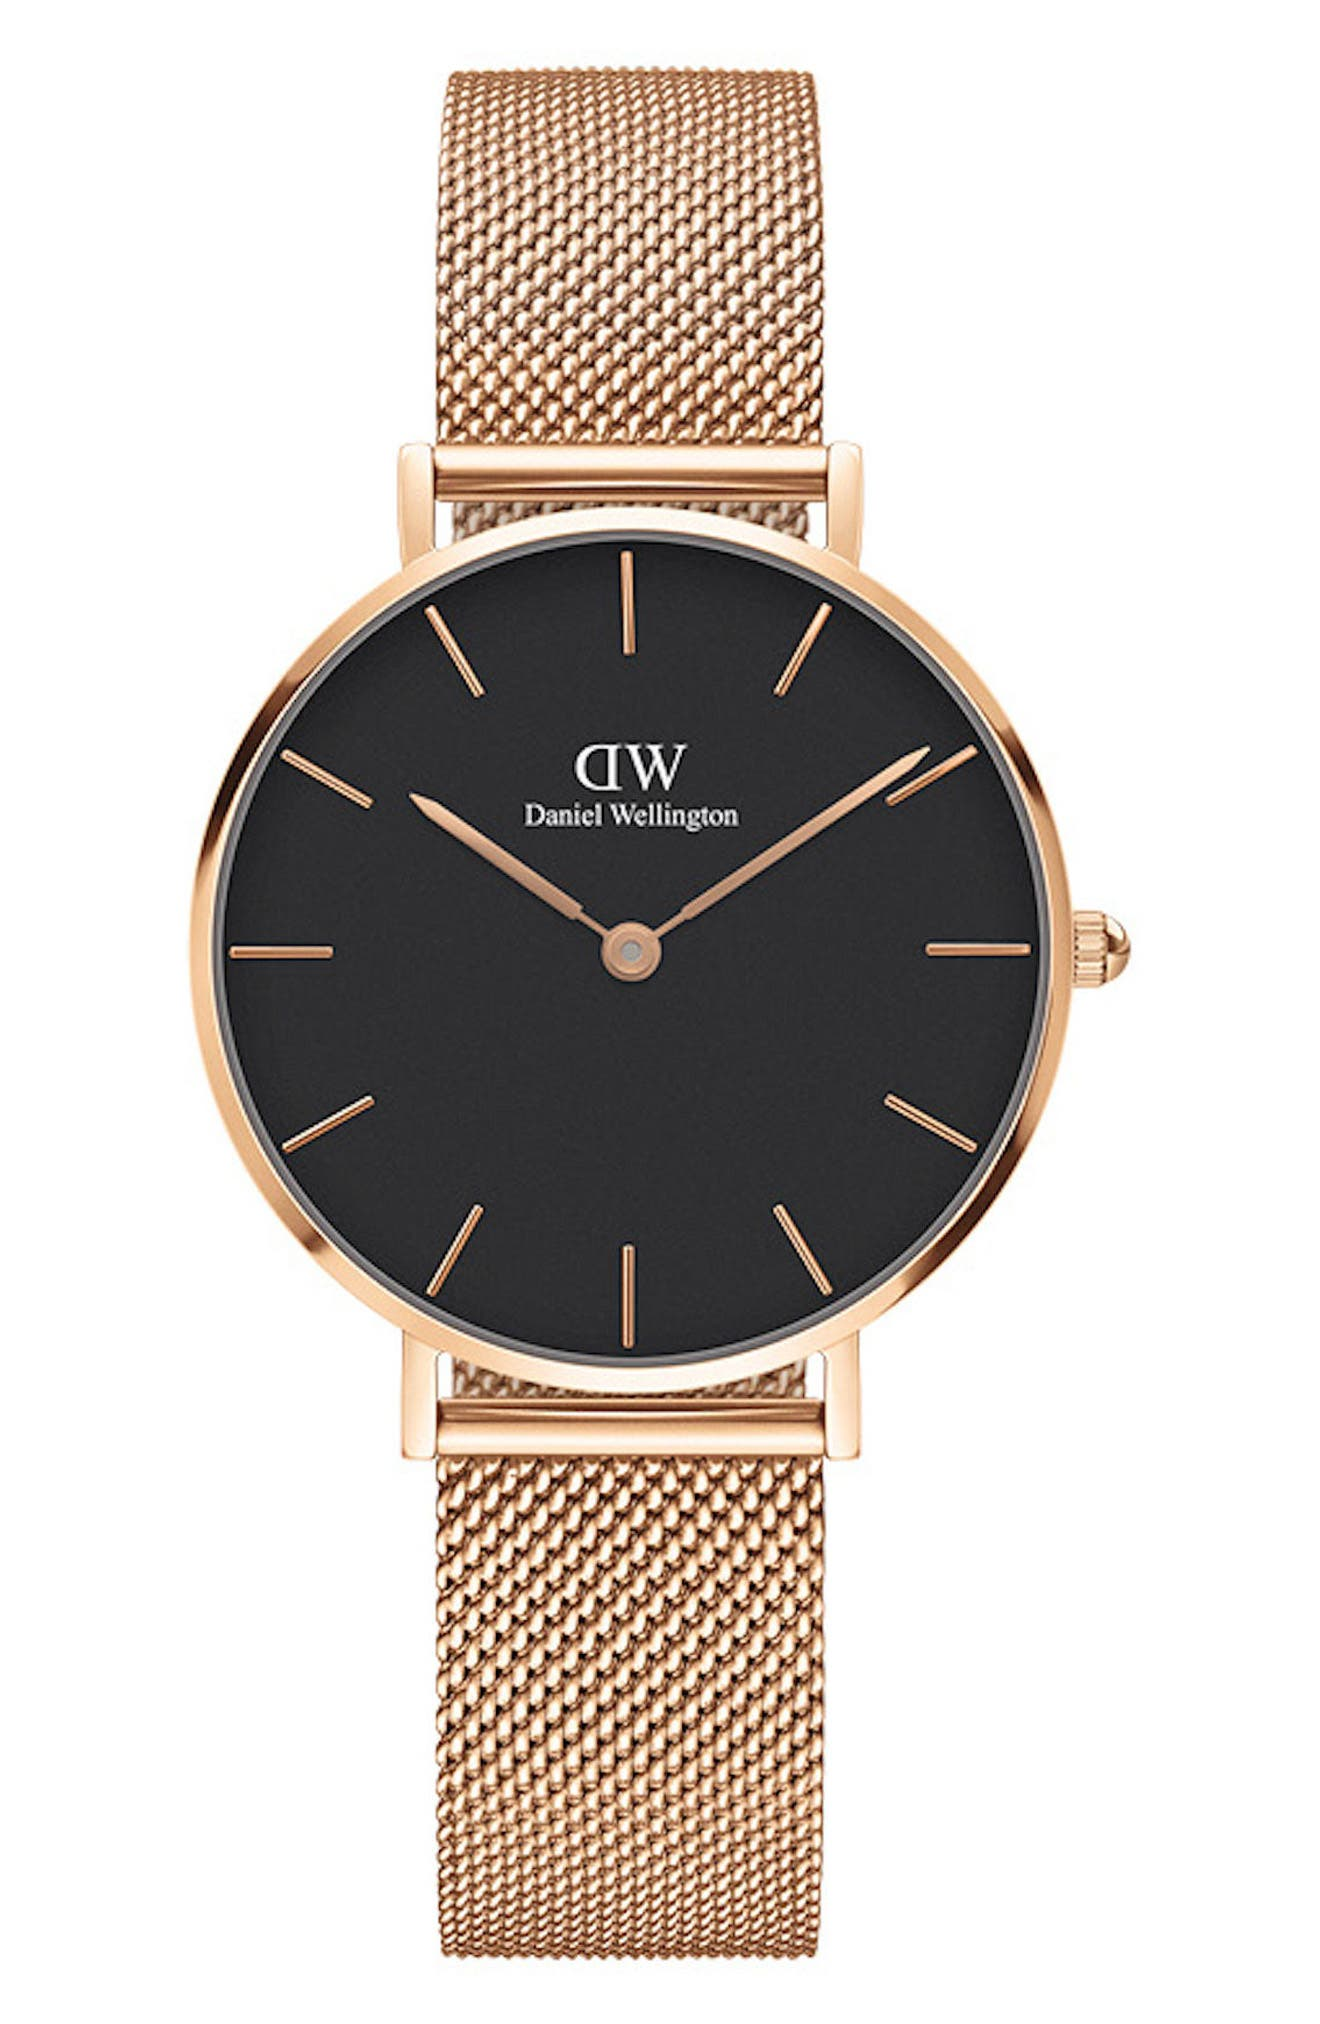 Dw00100217 Melrose Classic Petite Rose Gold-Plated Watch